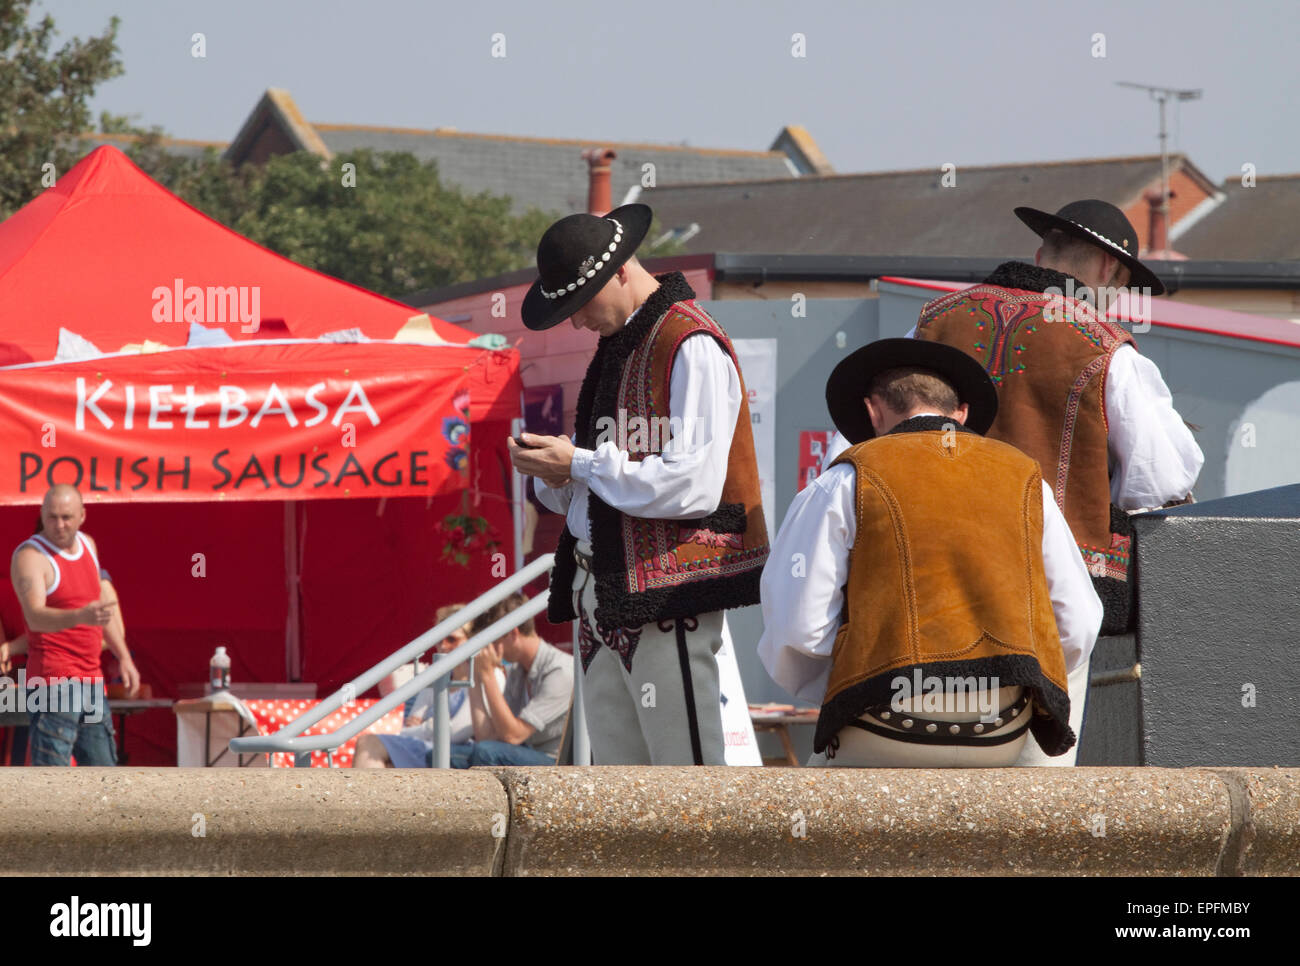 Three young men in traditional Polish costume check their phones at the 2011 Polish Arts Festival in Southend - Stock Image